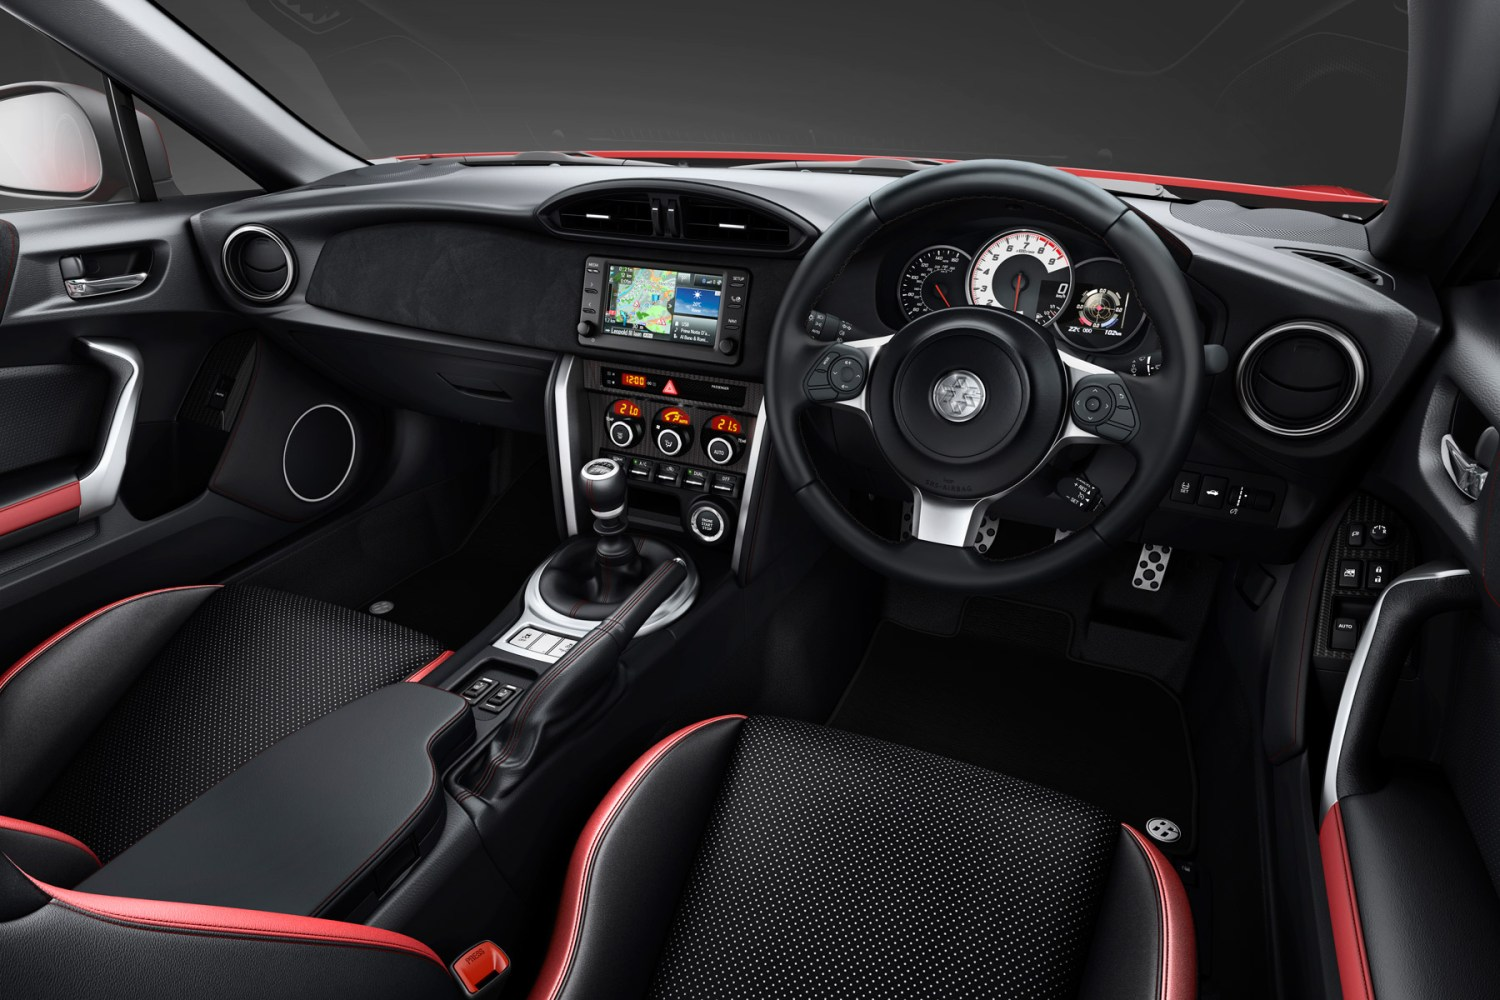 The 2017 Toyota GT86 features a track mode